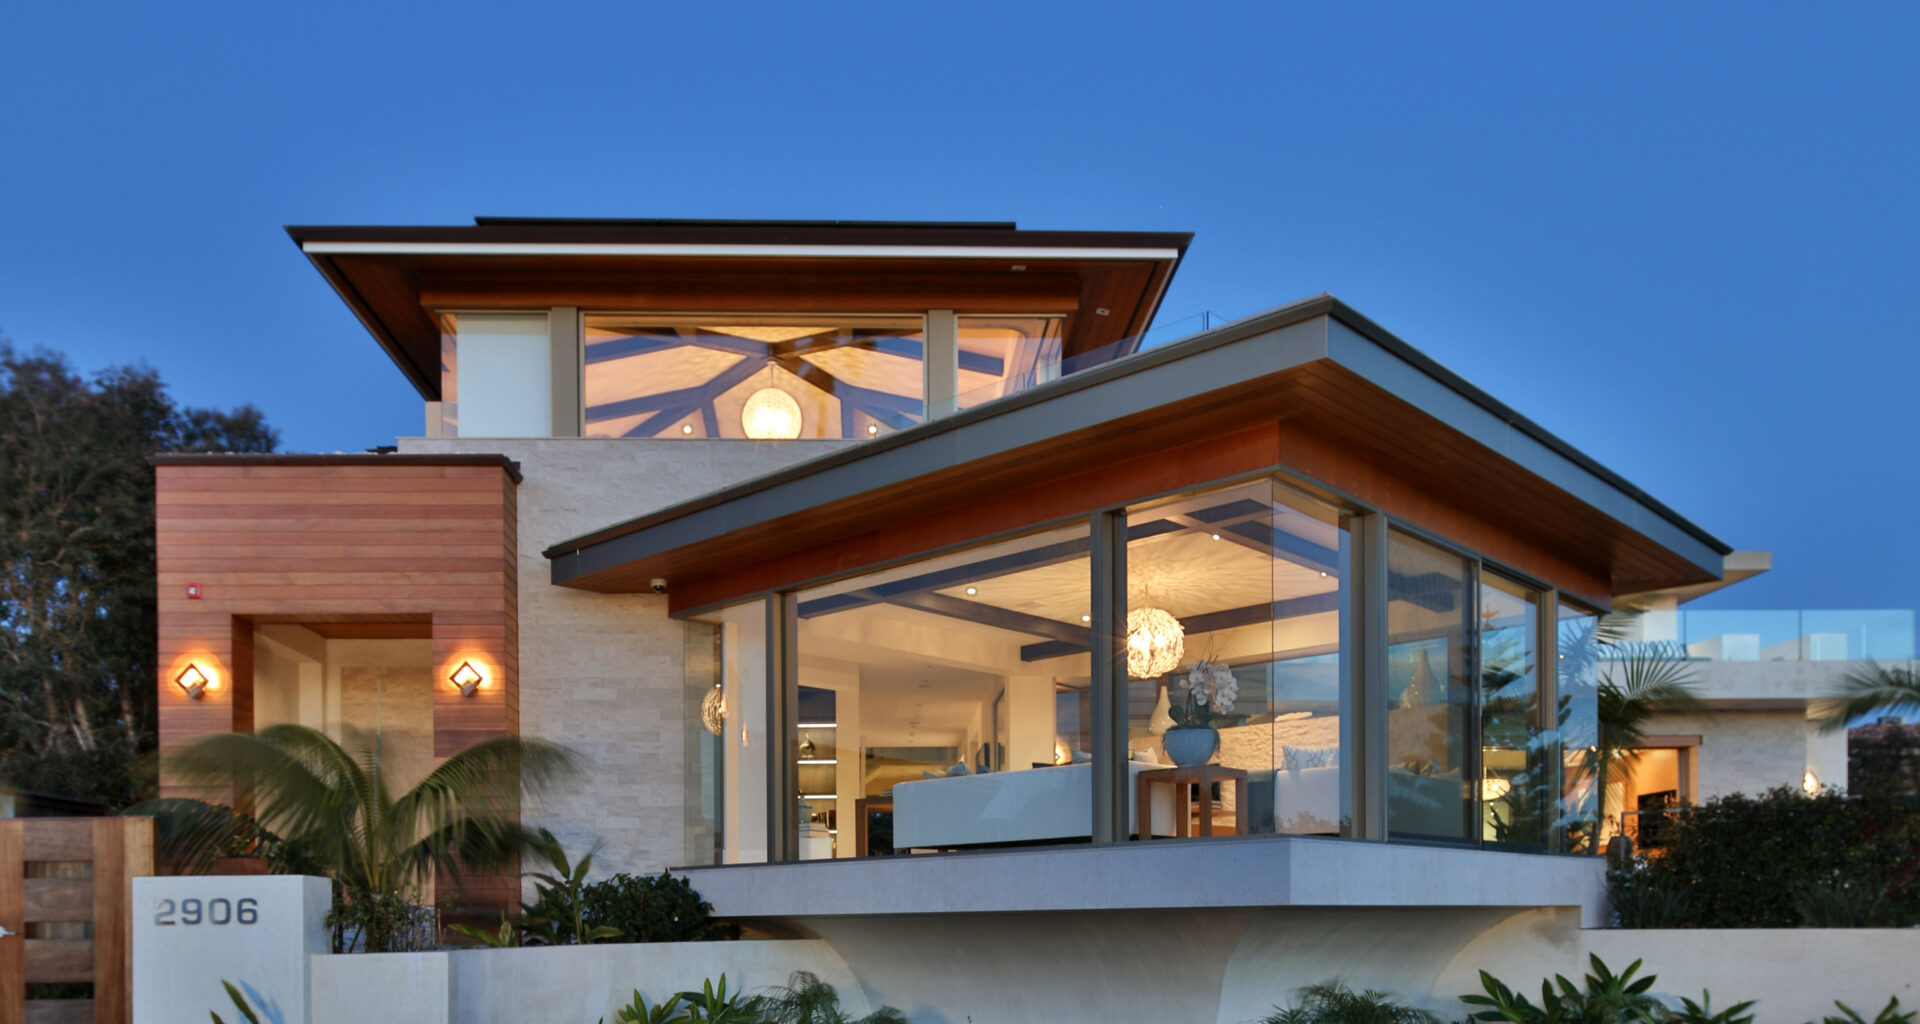 Perfect spot for your dream home in hermosa beach - featured in south bay DIGS Magazine